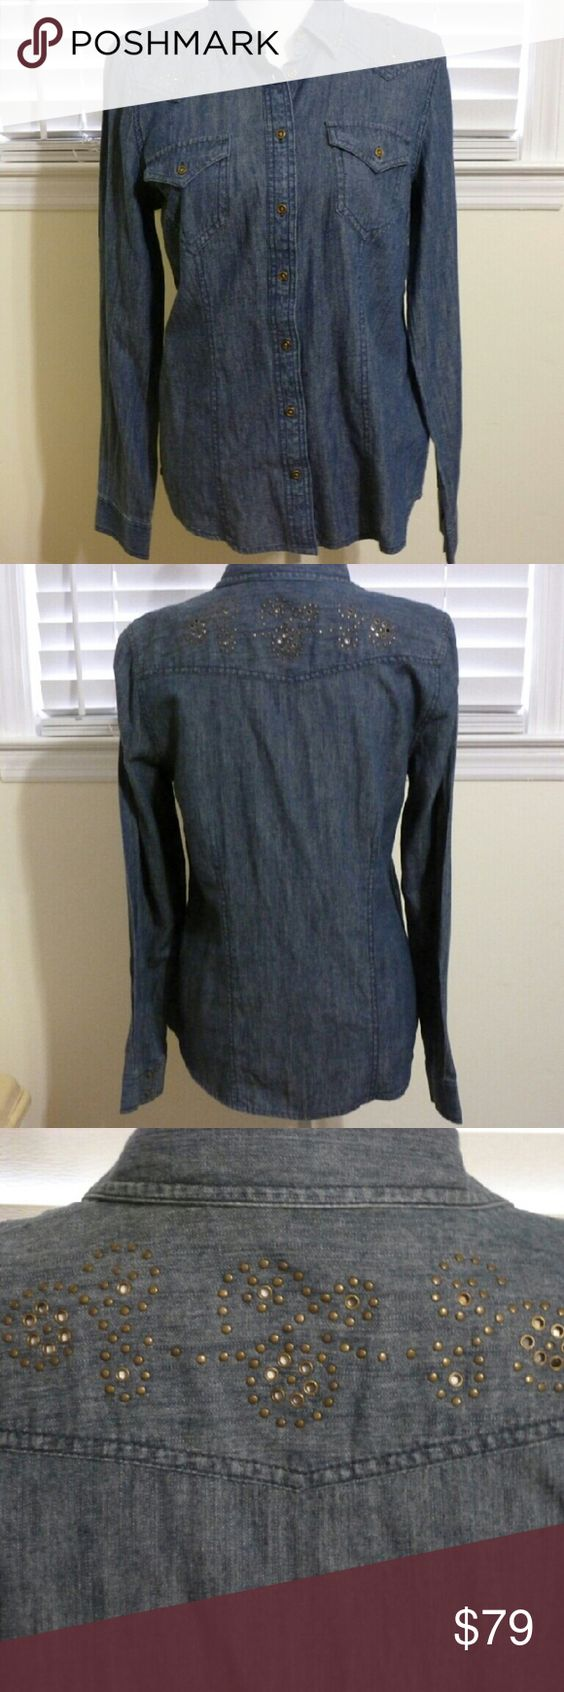 Nine West Vintage American Denim Shirt A little western,  a little bling and a lot of cute.  This Nine West denim shirt is 100% cotton and new with tags. Some of the metal grommets are peek a boo style. Nine West Tops Button Down Shirts